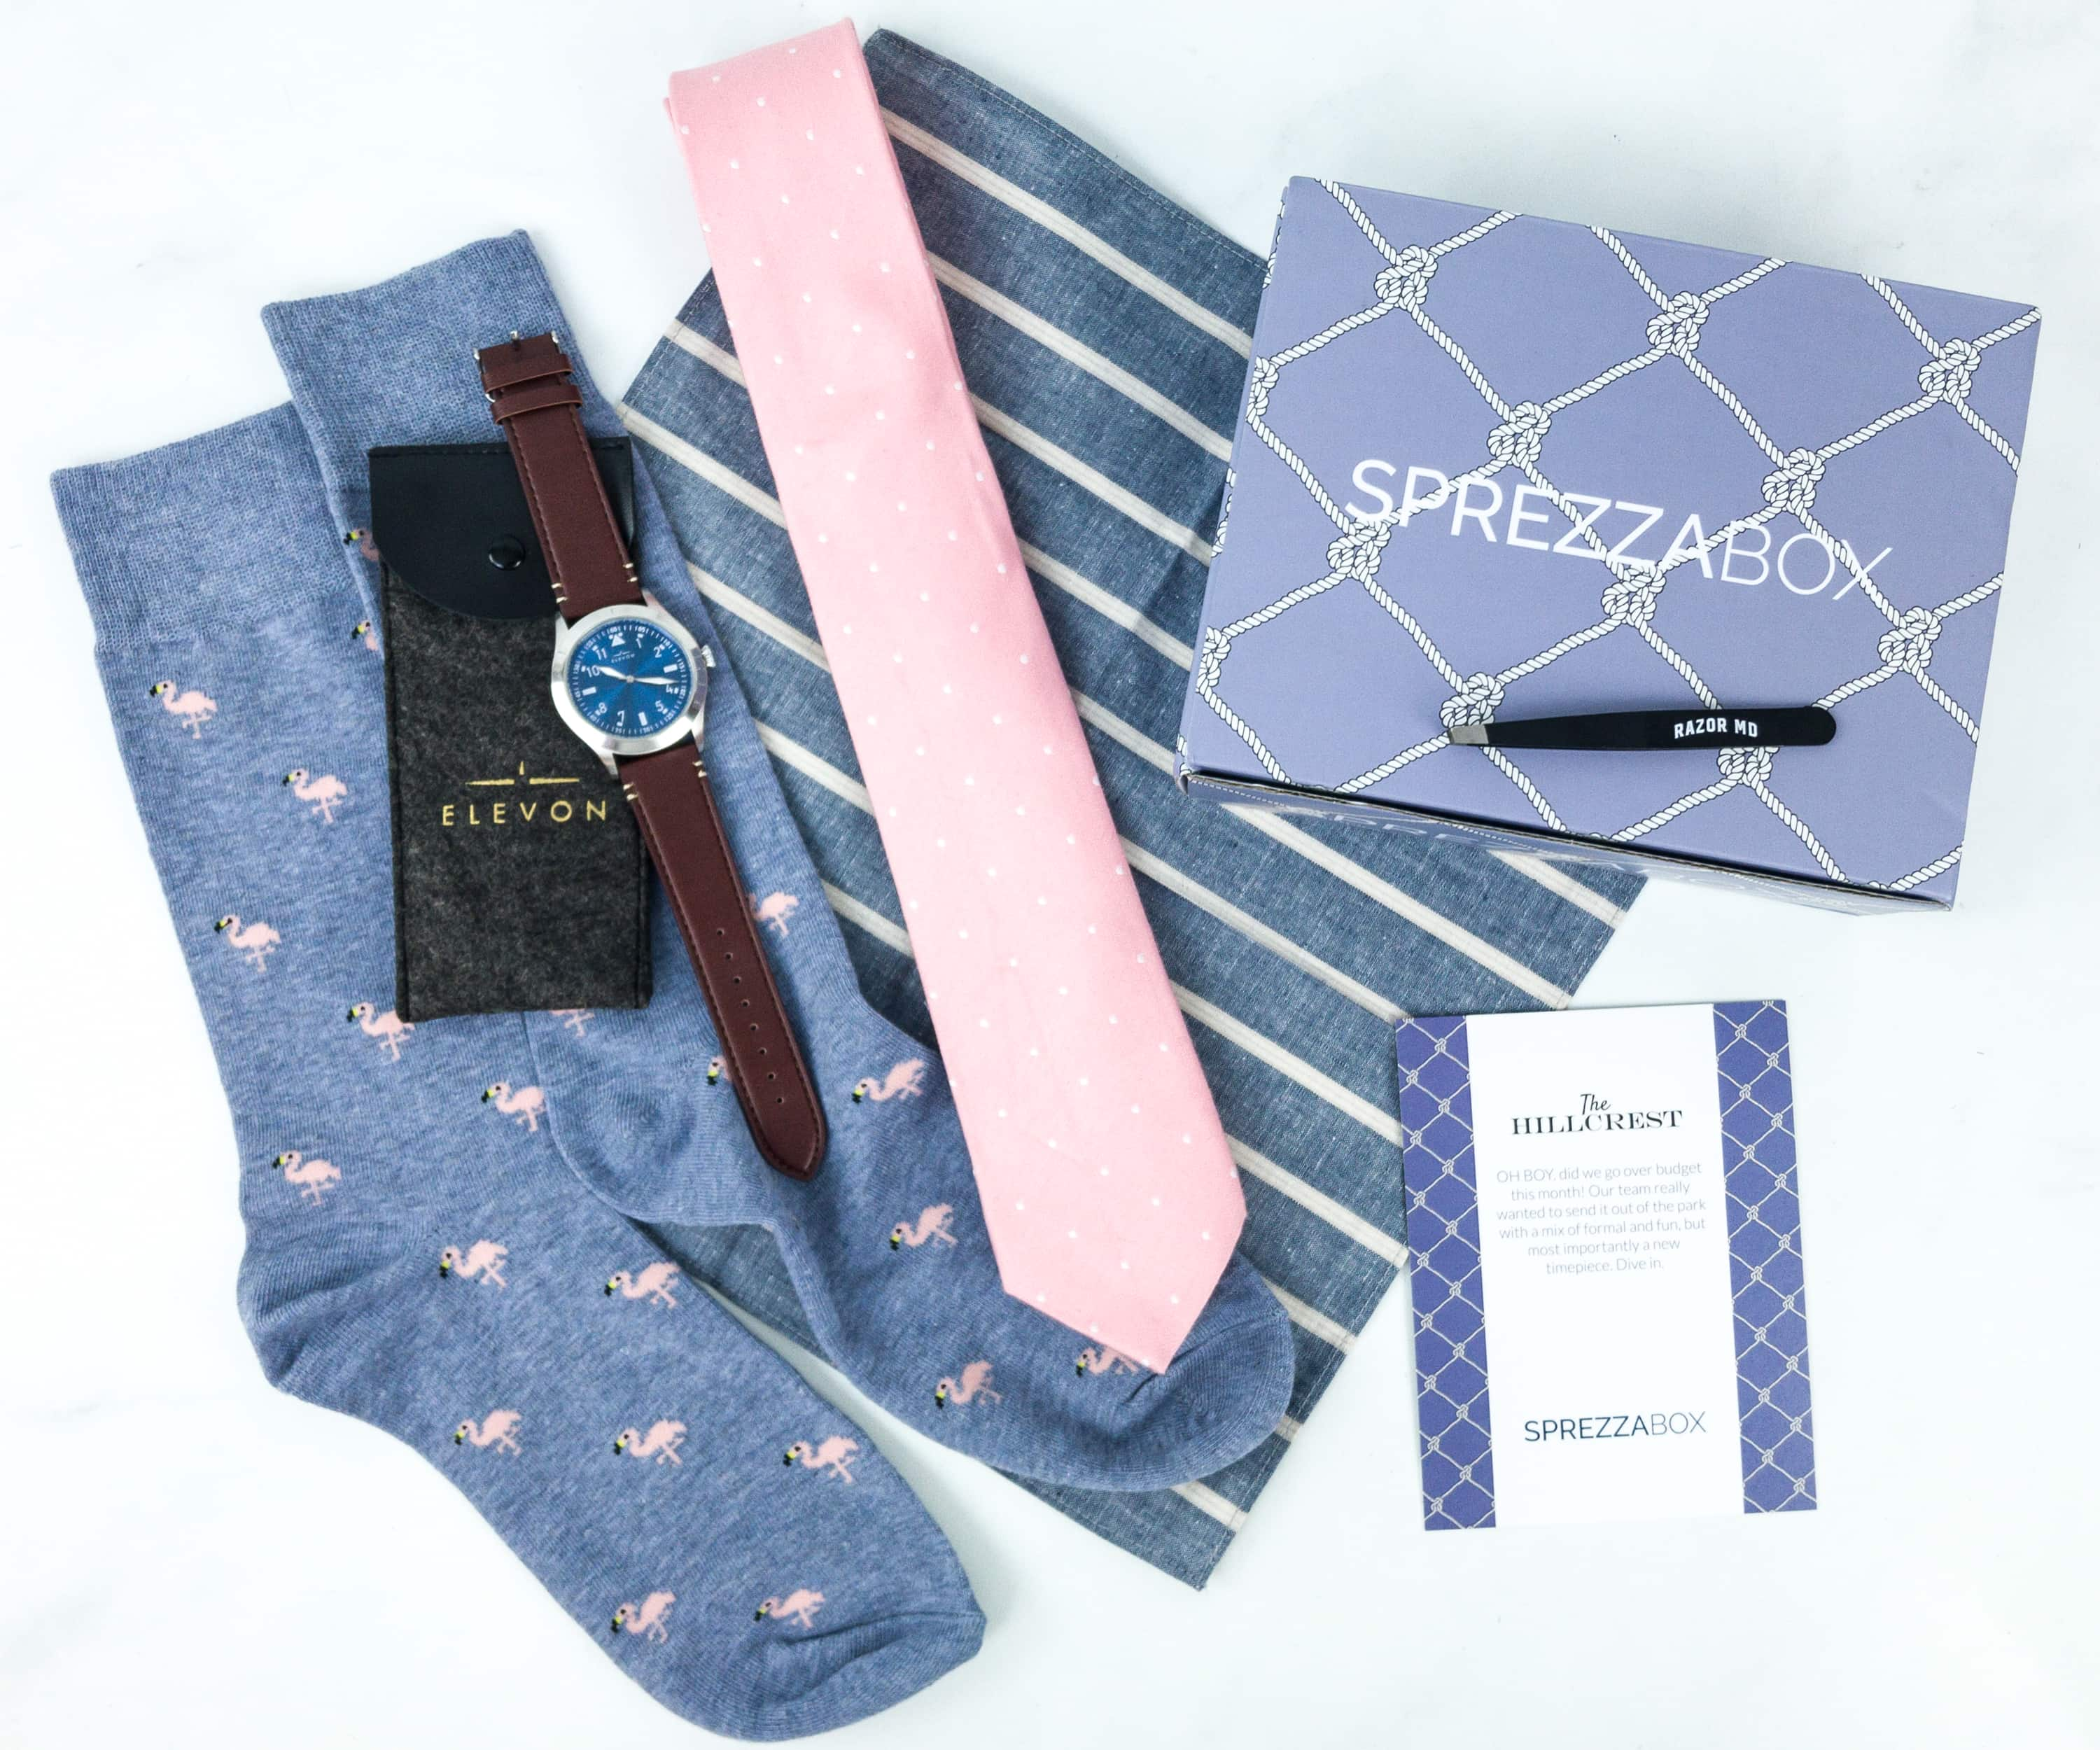 SprezzaBox June 2019 Subscription Box Review + Coupon